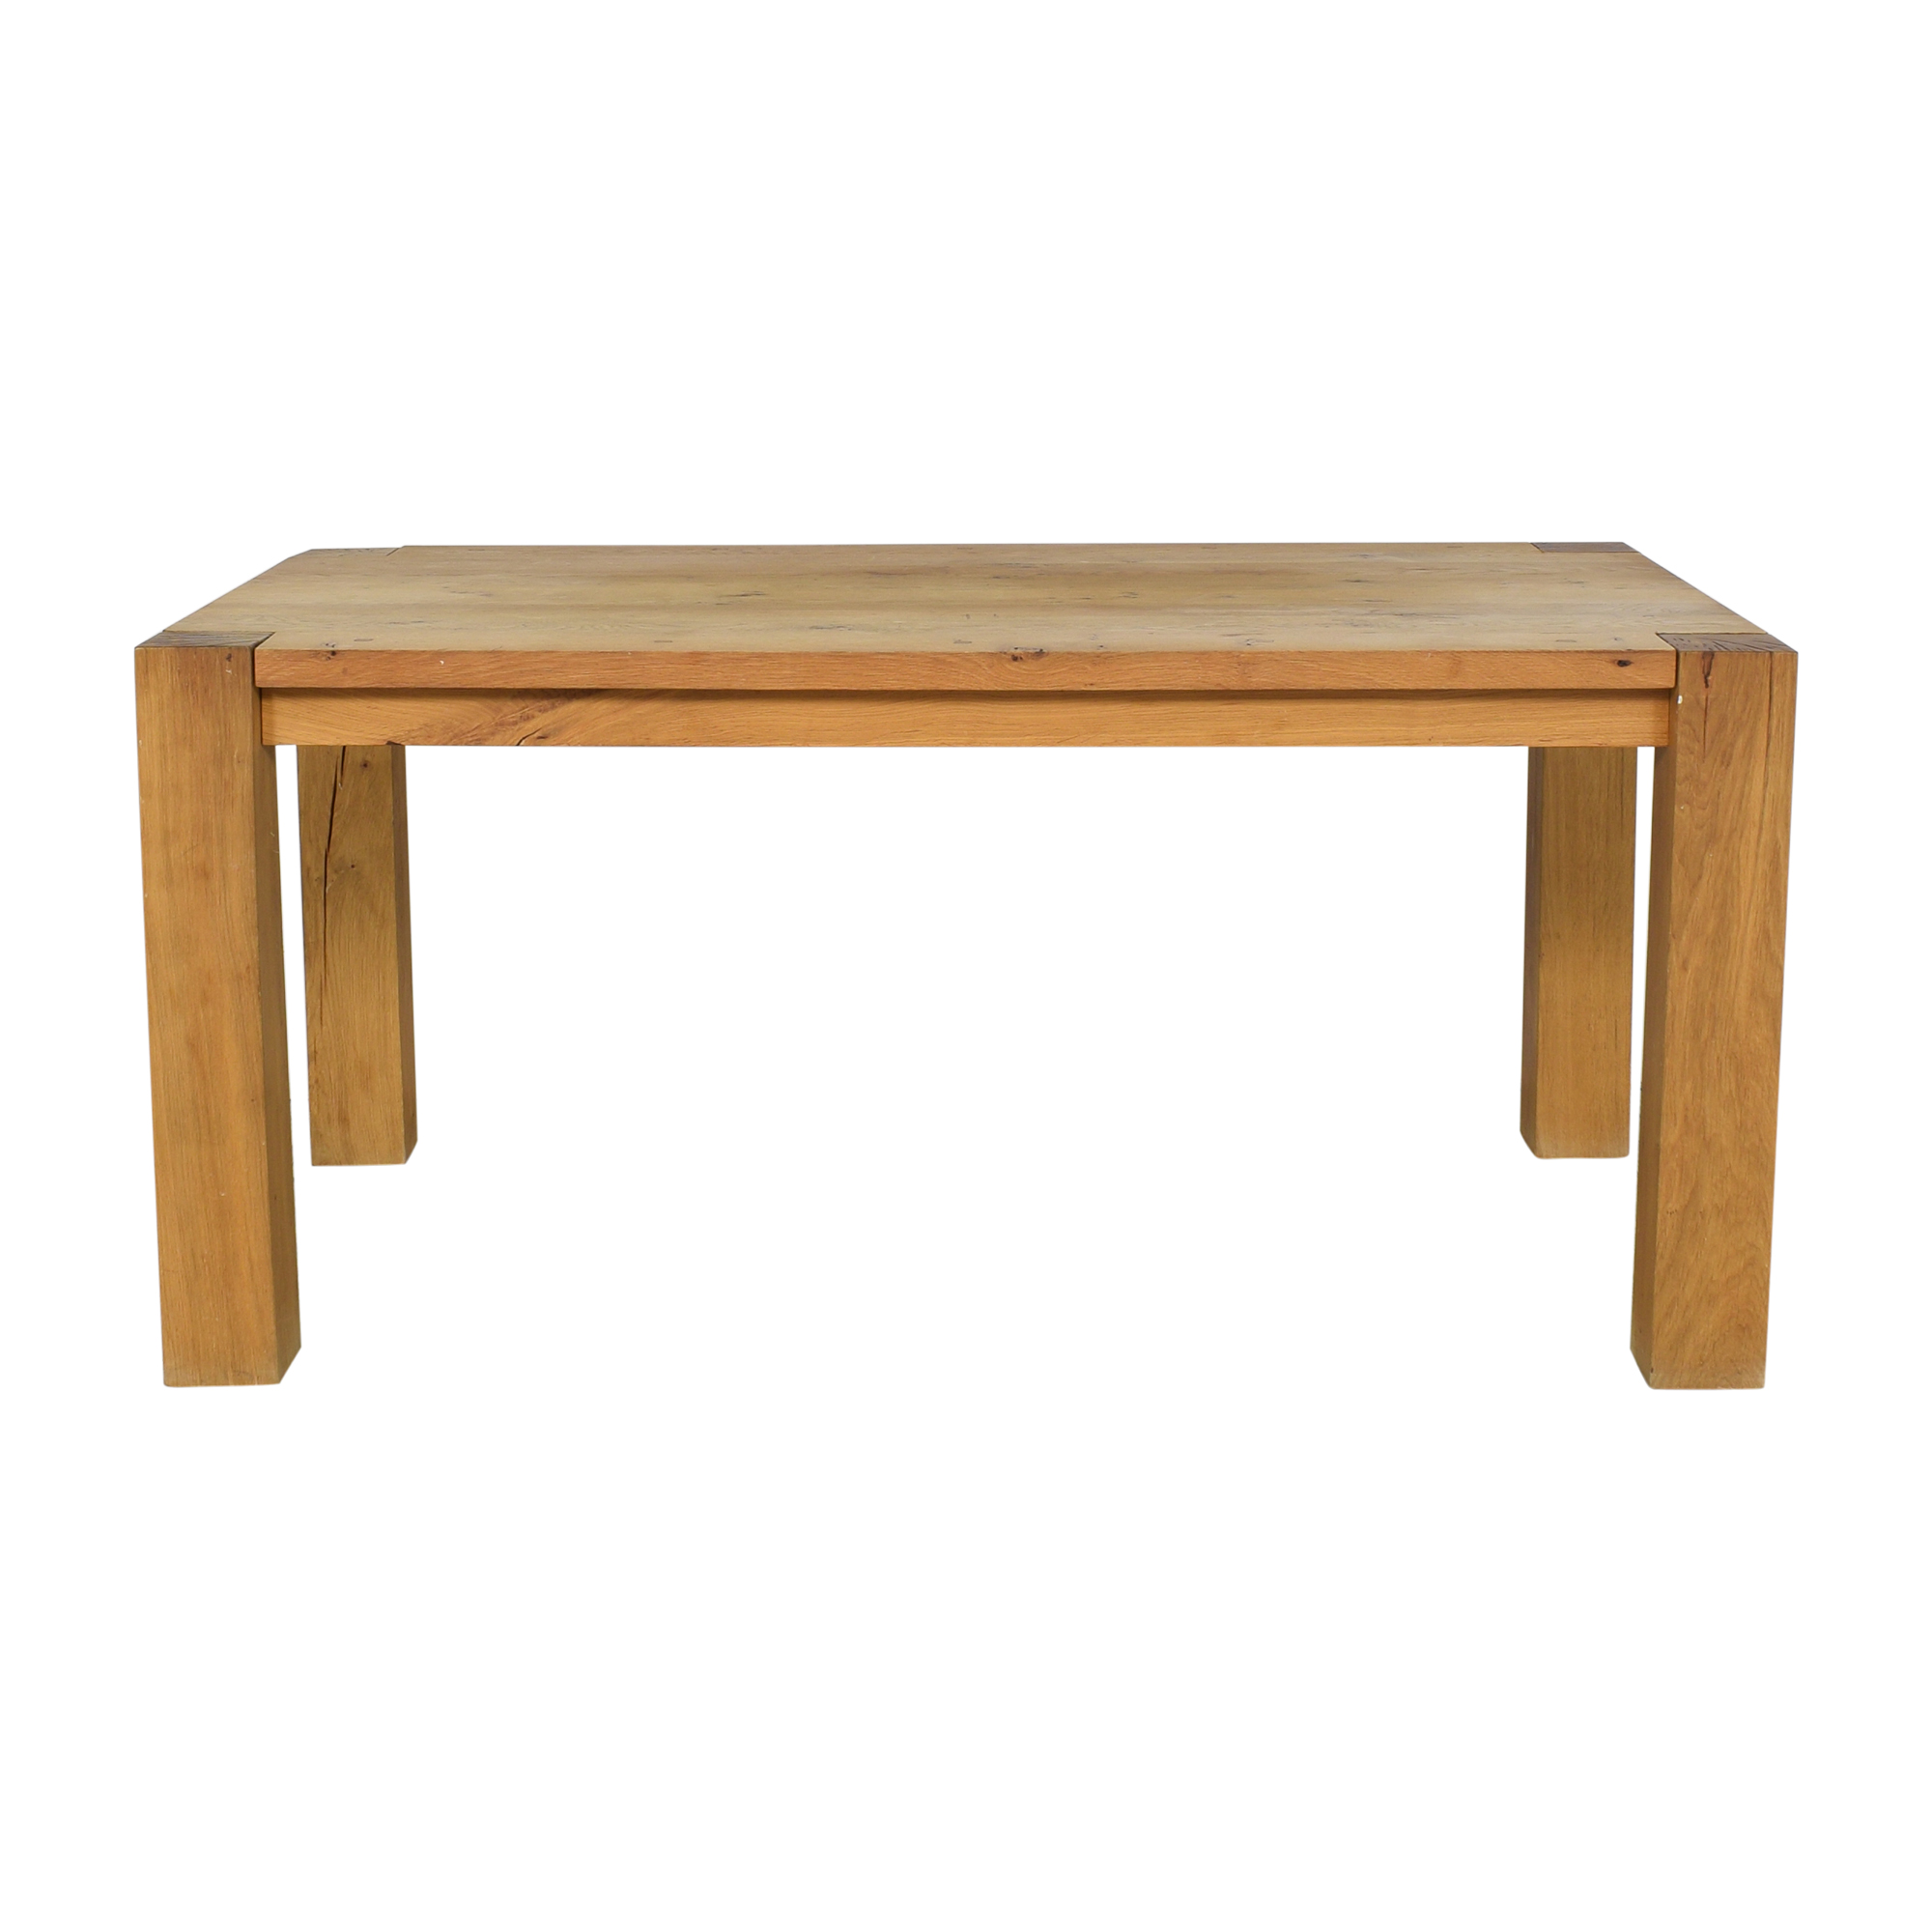 shop Crate & Barrel Big Sur Dining Table Crate & Barrel Tables